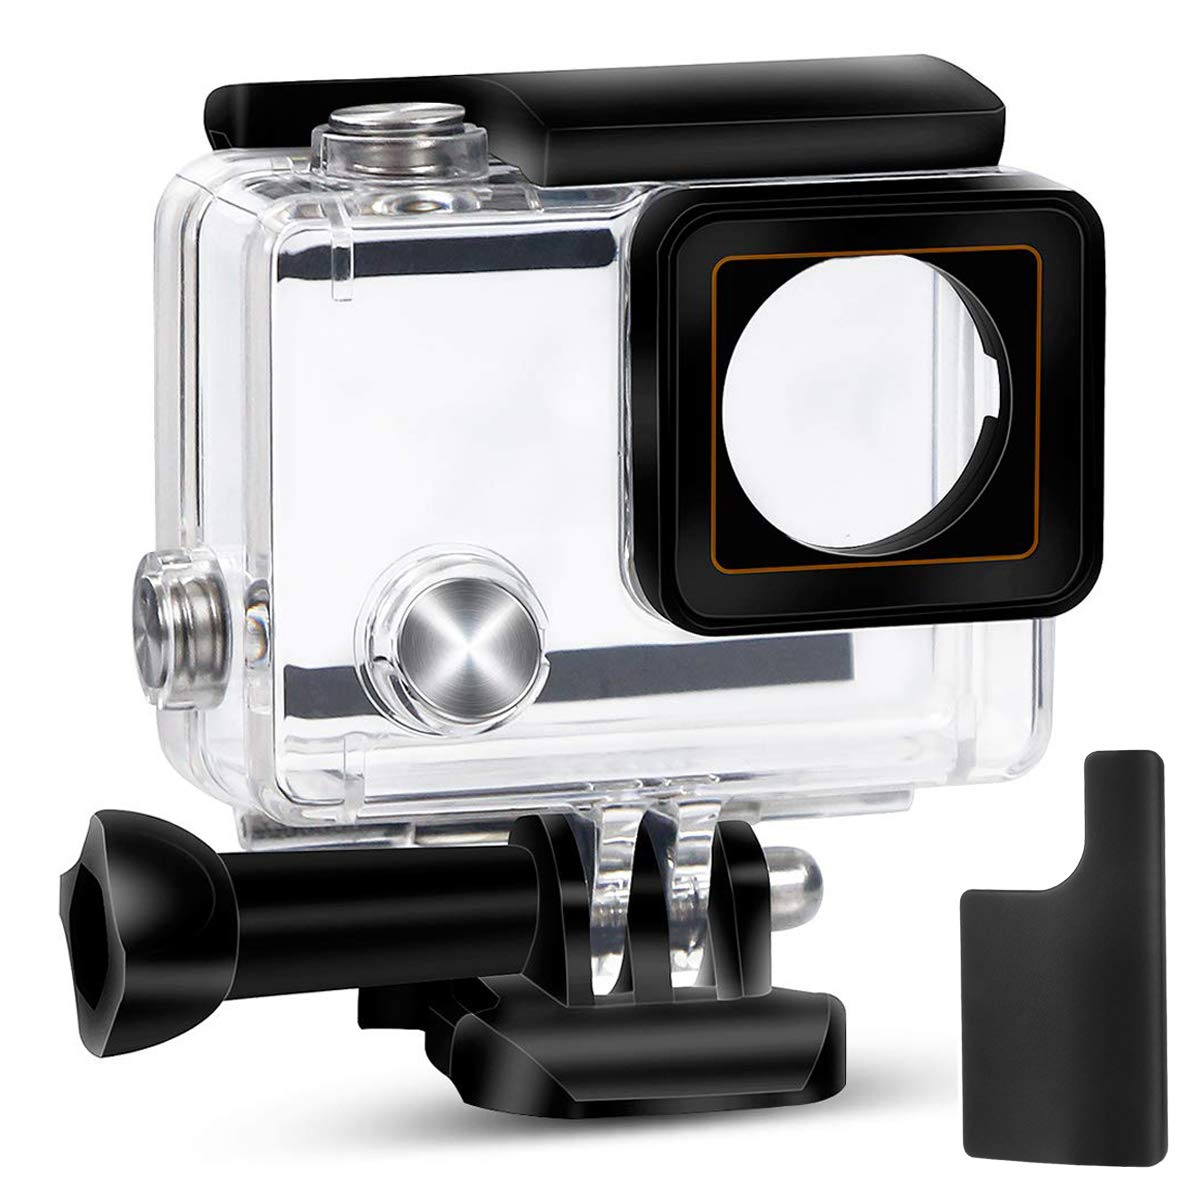 Yimobra Waterproof Housing Case for Gopro Hero 4 and Hero 3+ with Quick Release Mount and Thumbscrew Protective 147FT 45M Underwater Photography Dive Hero Transparent (Presented One More Clip) by Yimobra